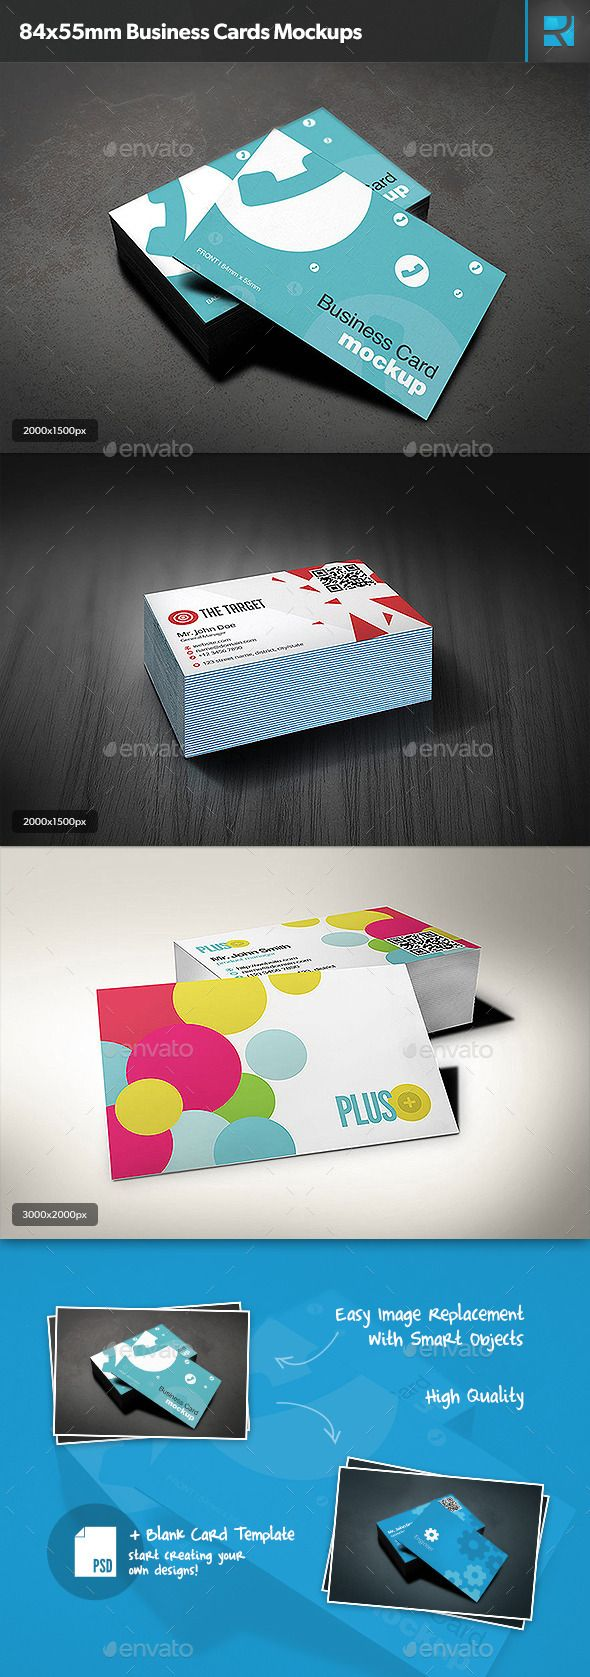 84x55mm business cards mockups mock up business cards and business business cards mockups photoshop psd photo like blank available here httpsgraphicriveritem84x55mm business cards mockups9818022ref reheart Image collections